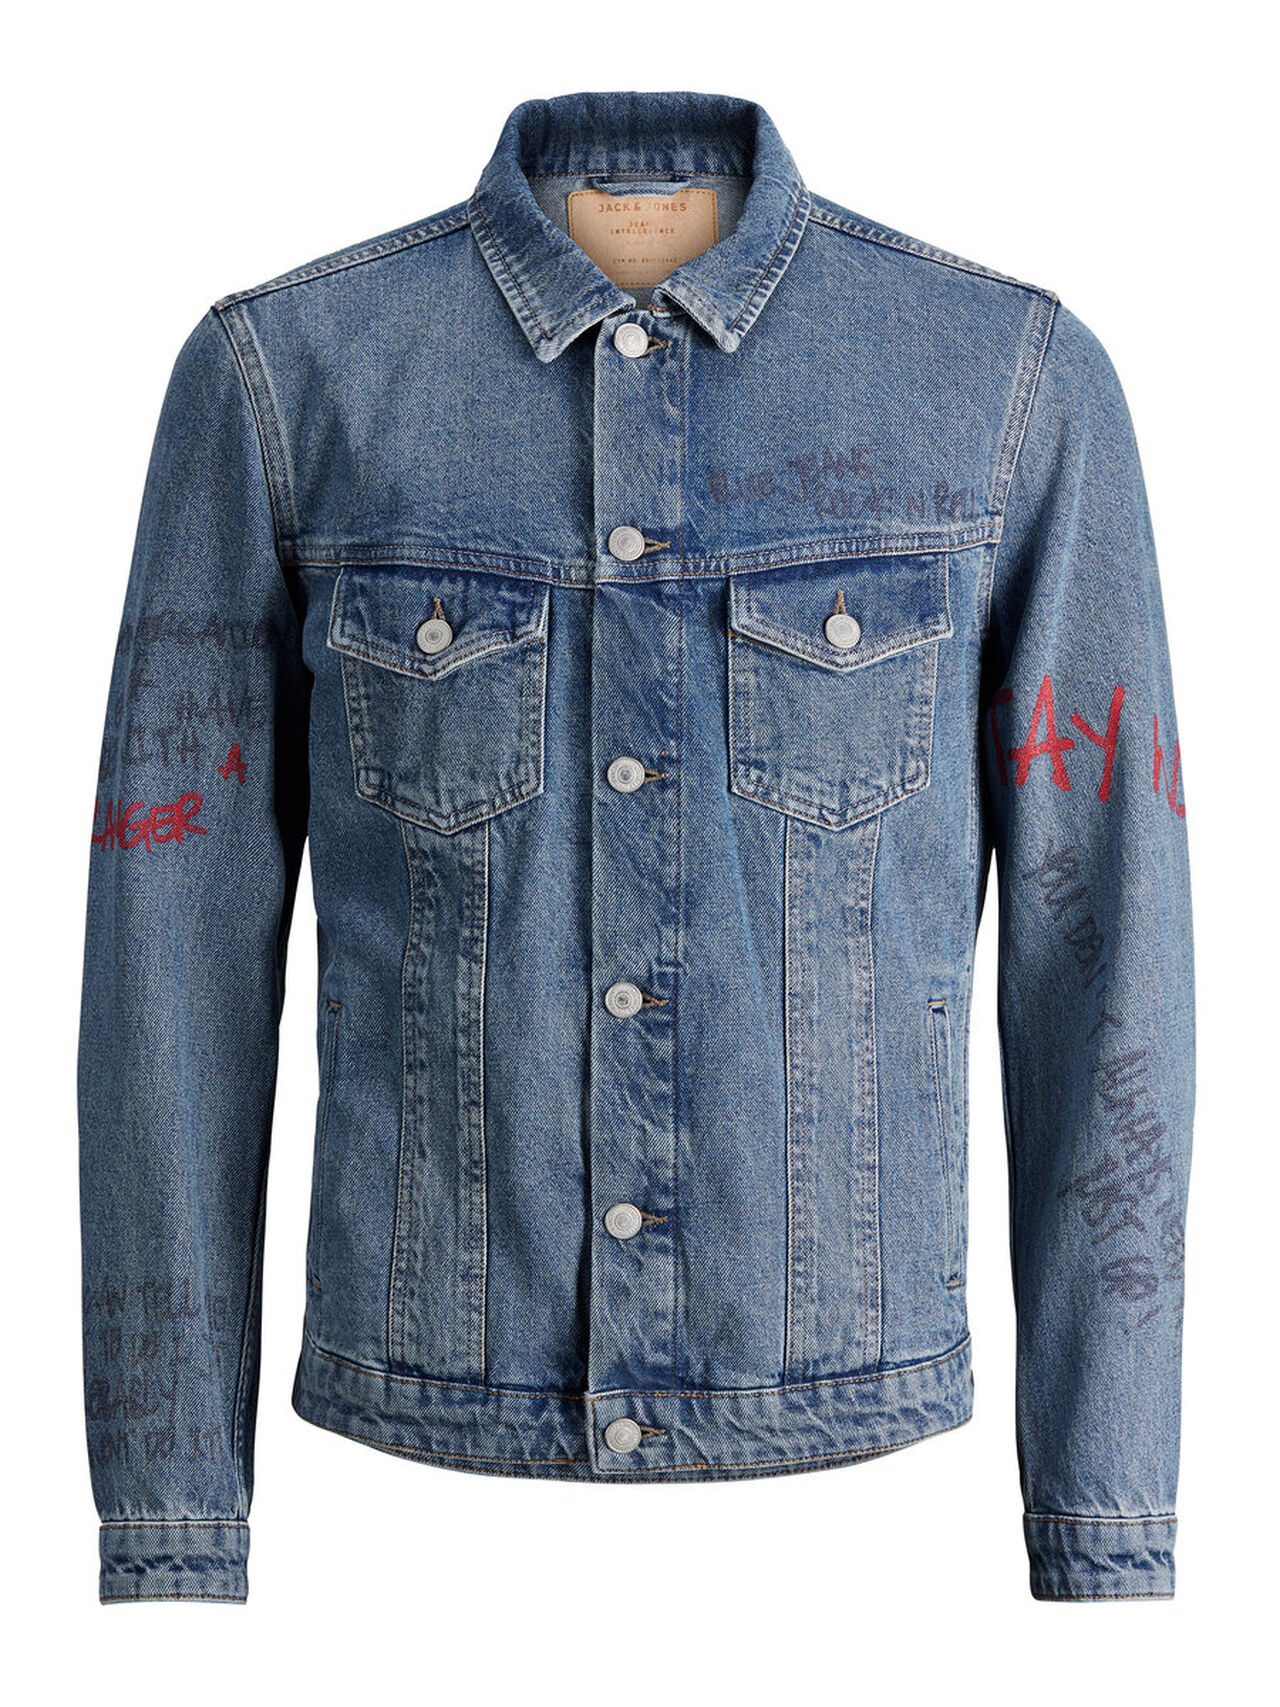 JACK & JONES Alvin Jacket Jos 300 Denim Jacket Men Blue